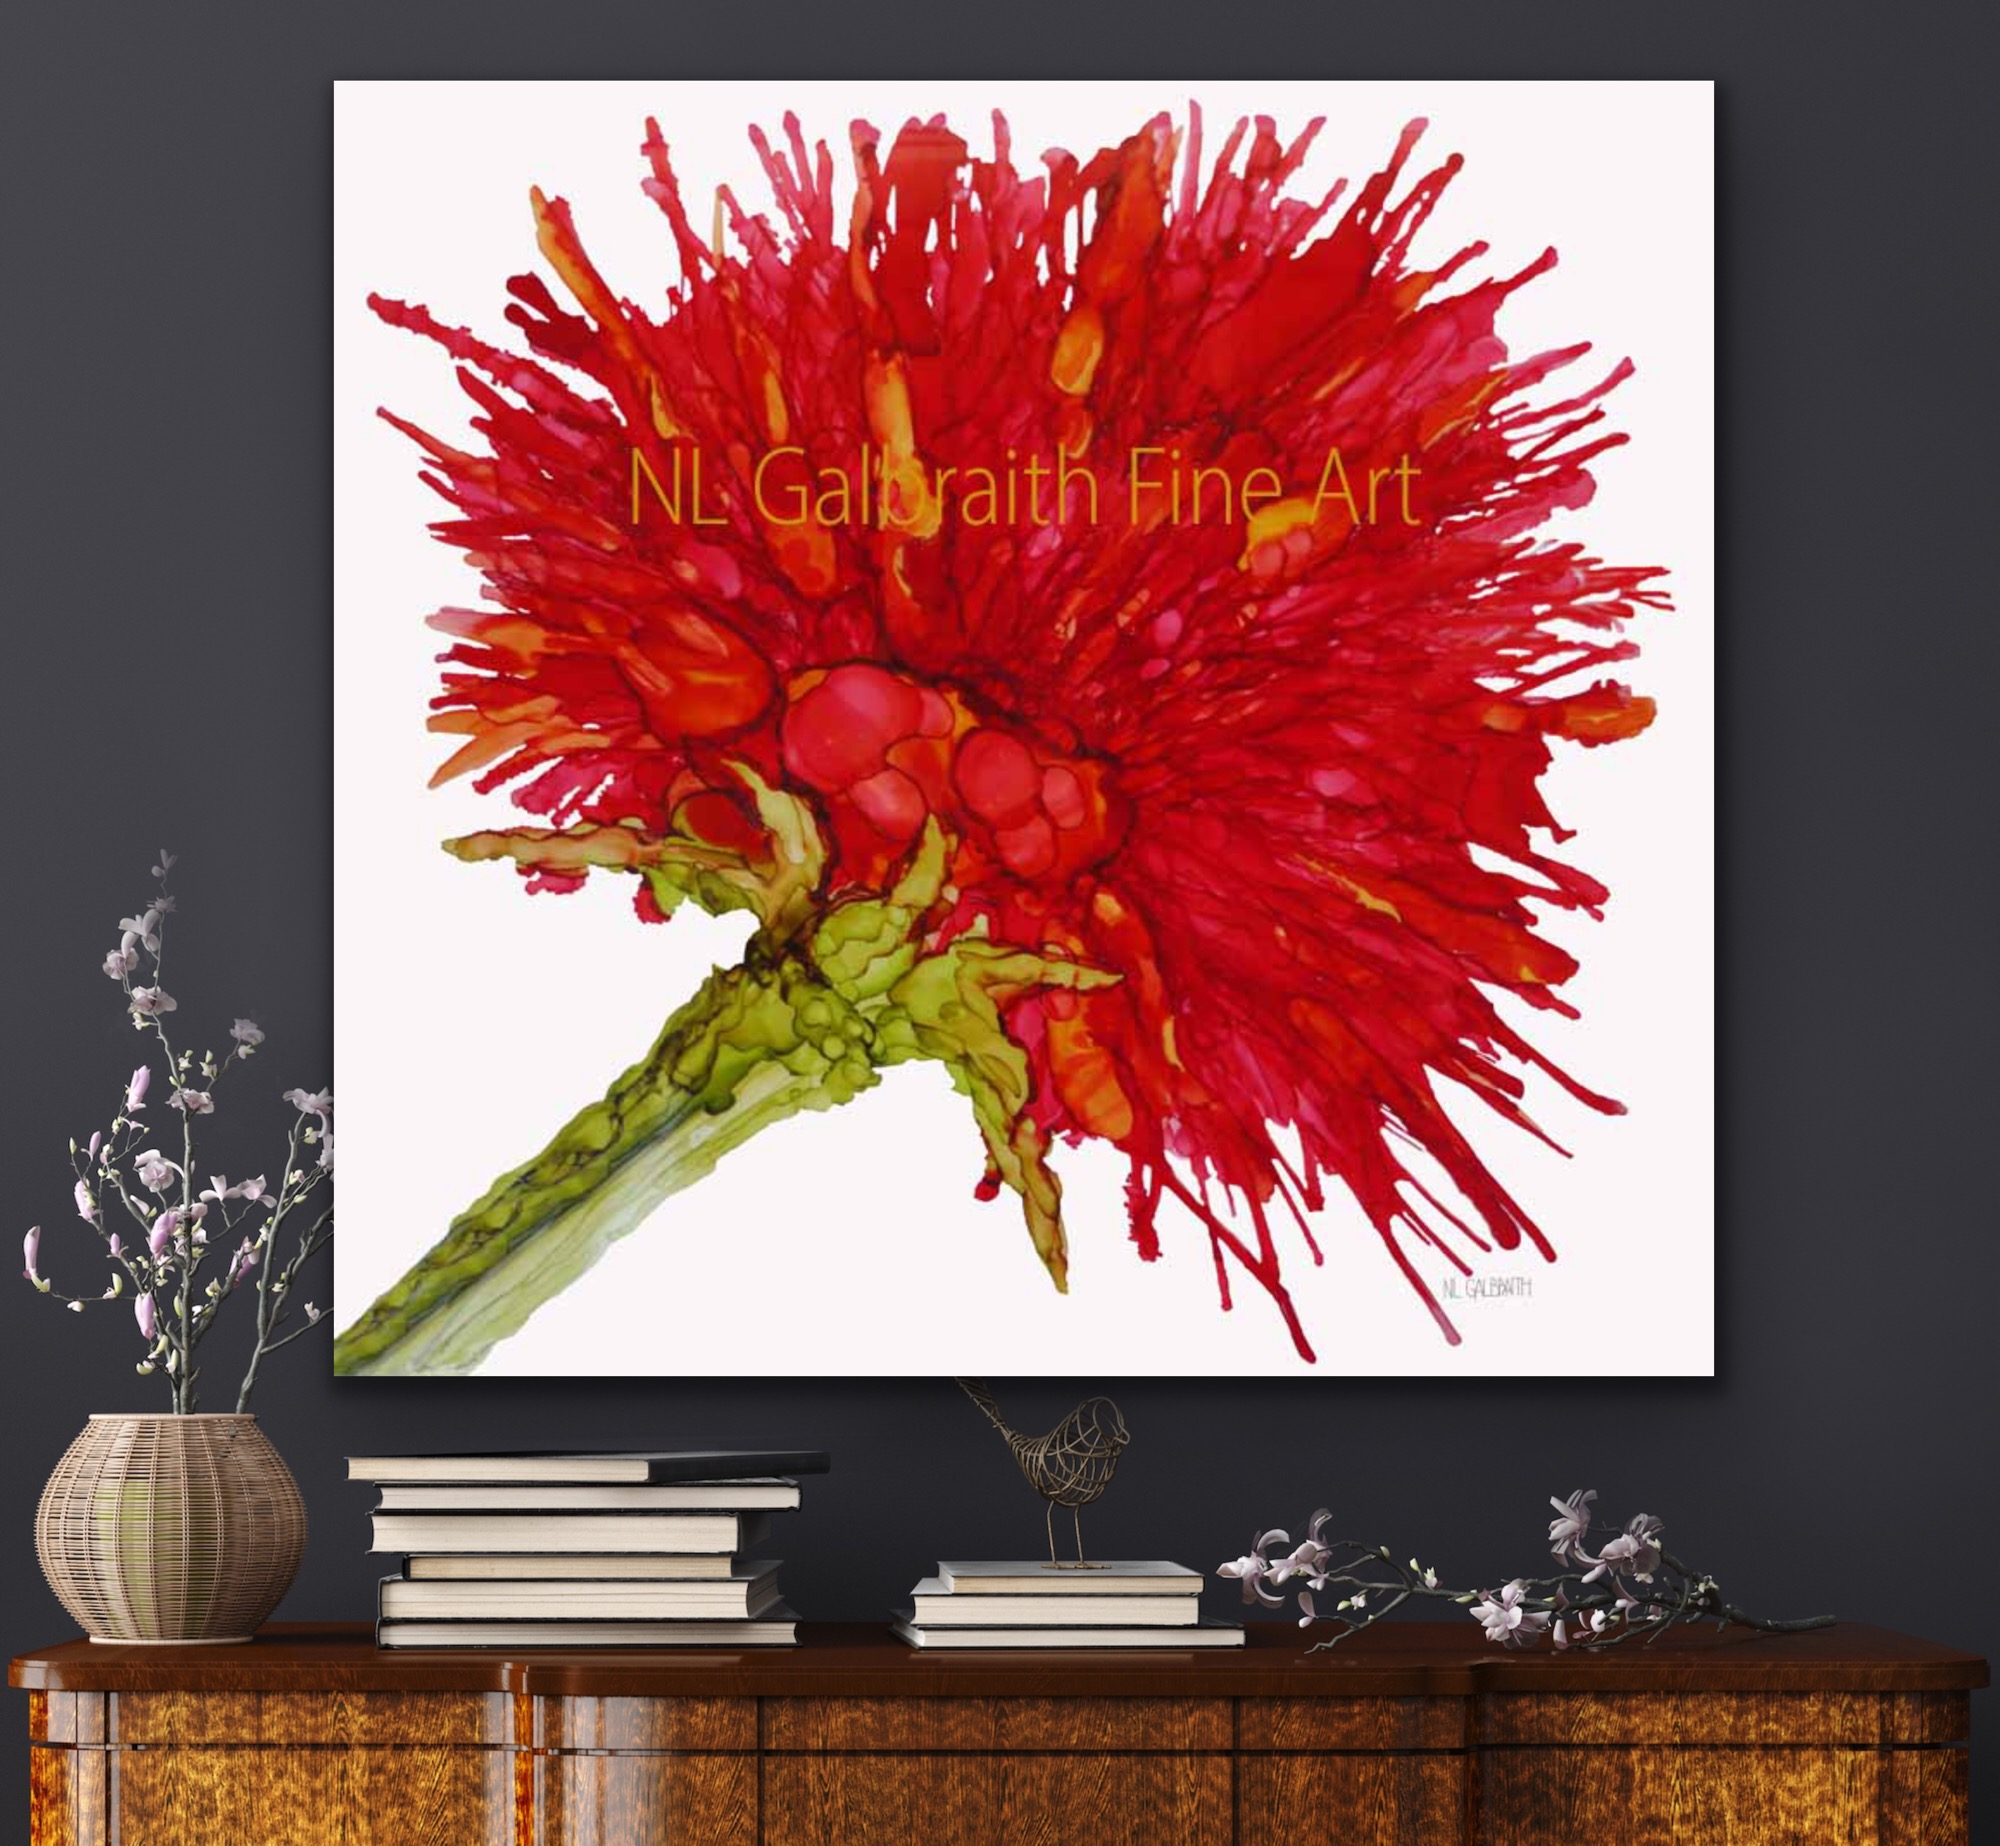 Fine Art Giclee of a Crimson Red Flower over a Side Table